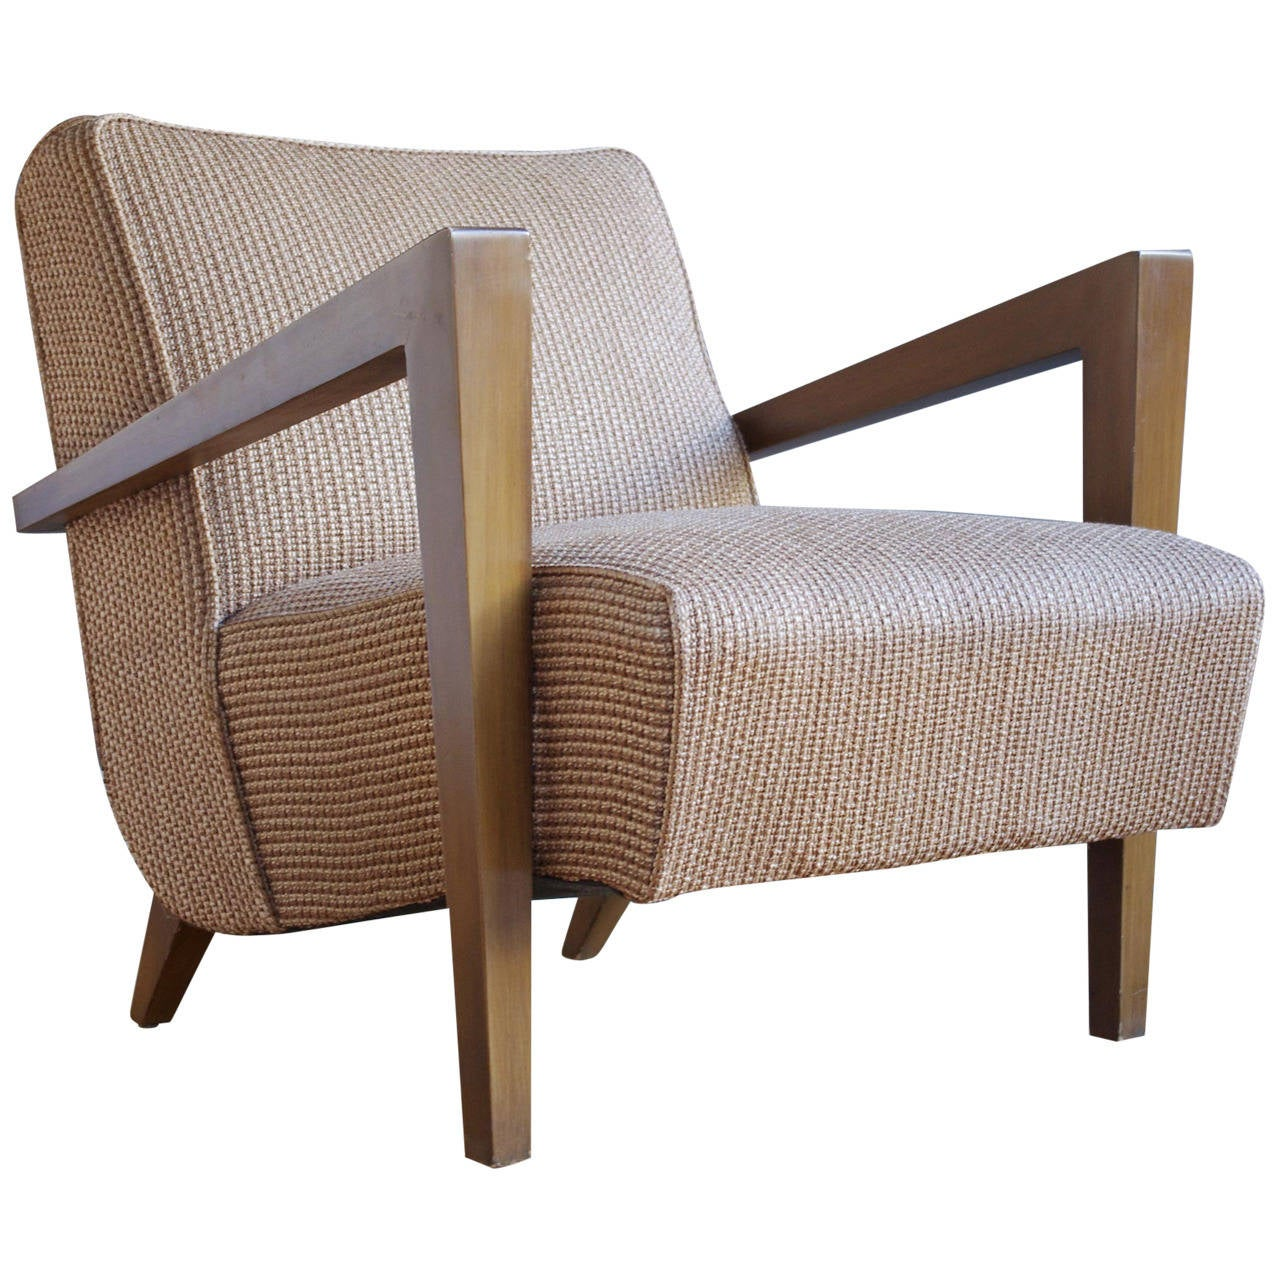 Sculptural mid century modern lounge chair at 1stdibs for Contemporary lounge furniture